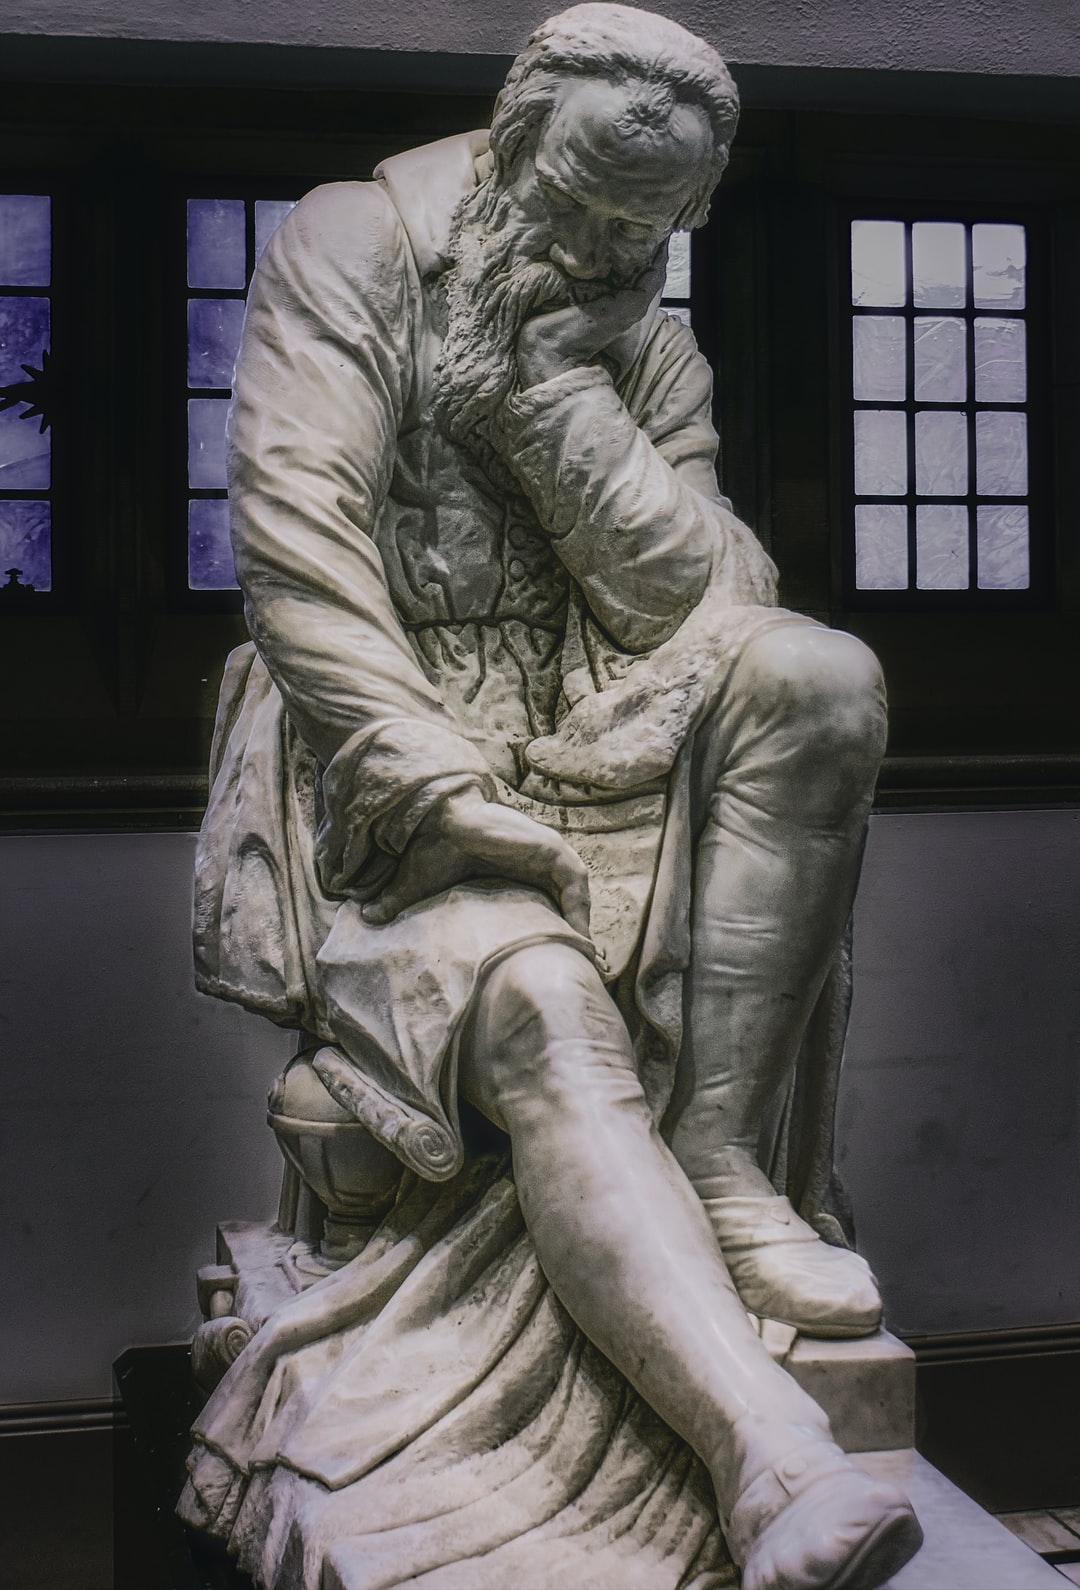 Marble sculpture of Galileo Galilei contemplating the nature of the universe Nov., 2019).